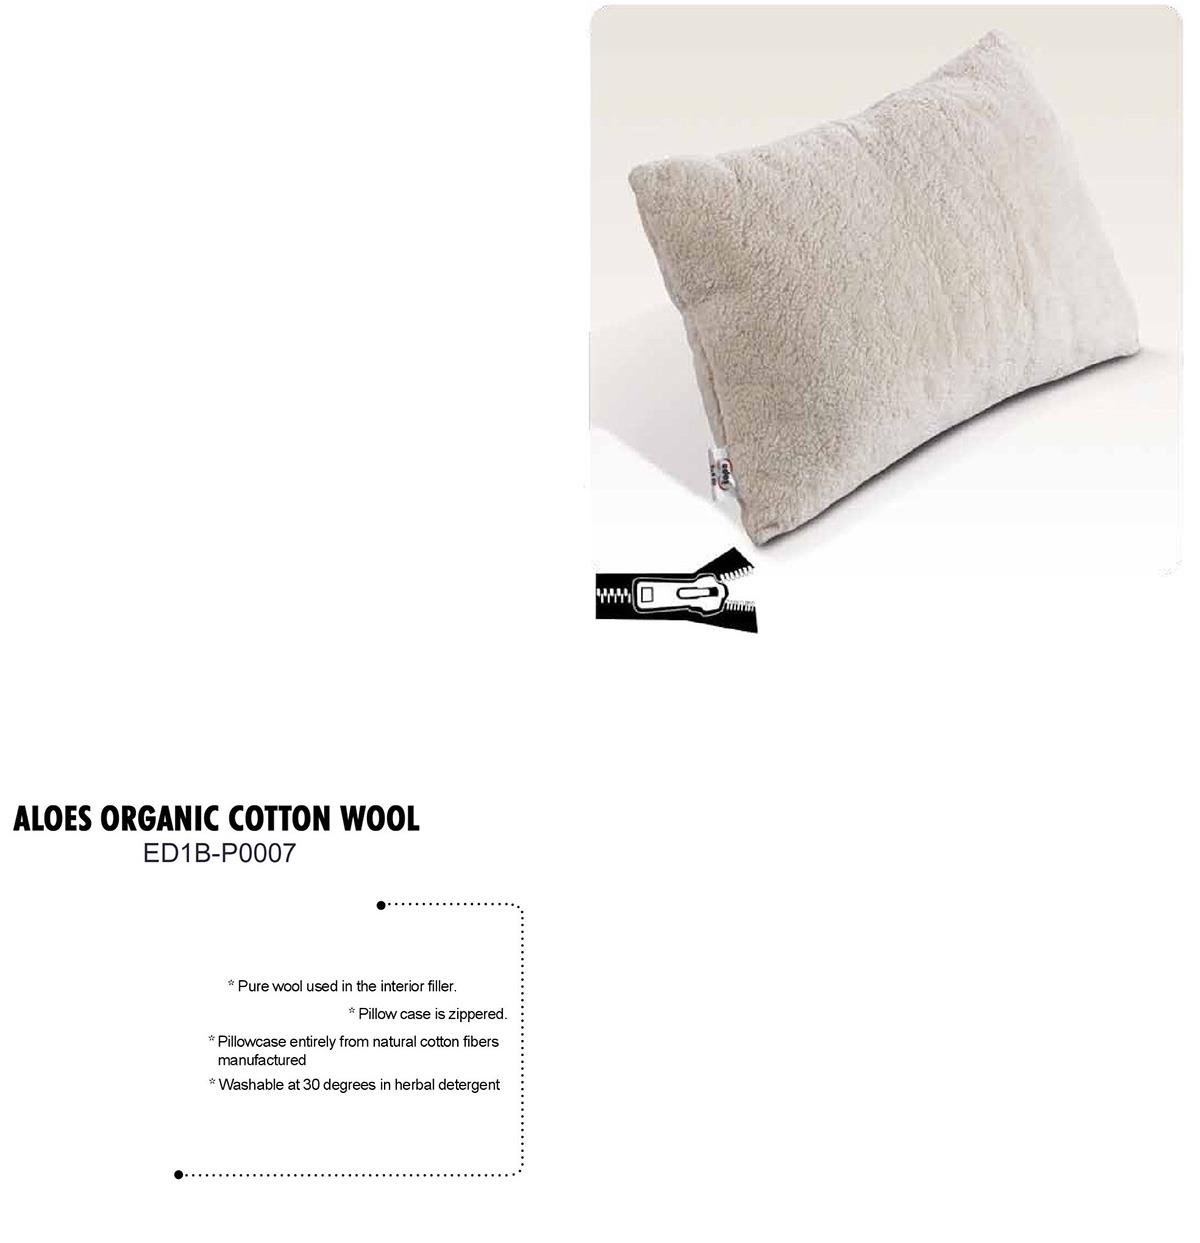 Aloes Organic Cotton Wool